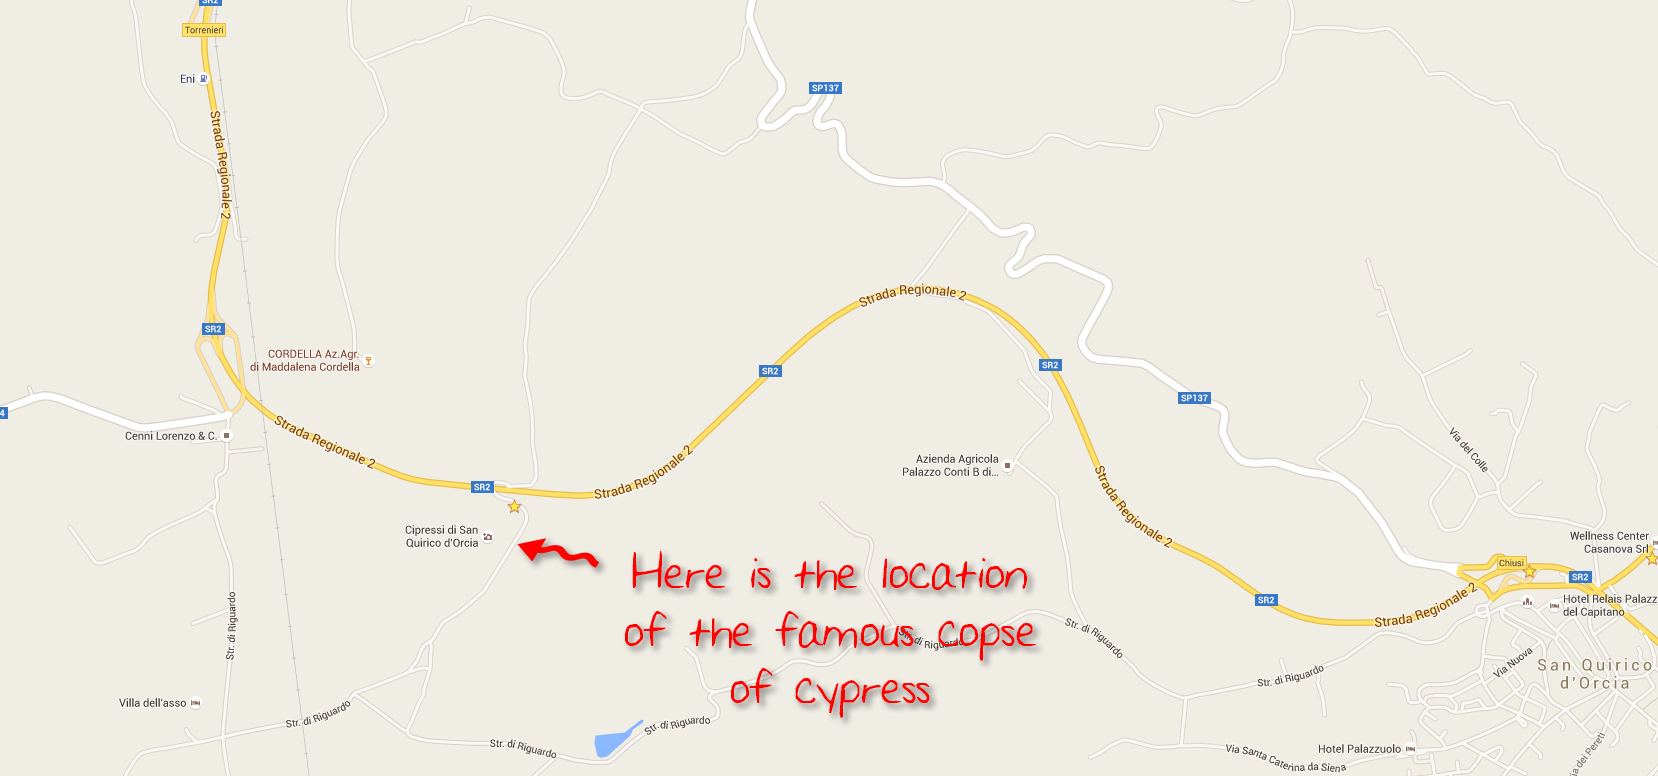 Map showing the location of the famous cypress copse